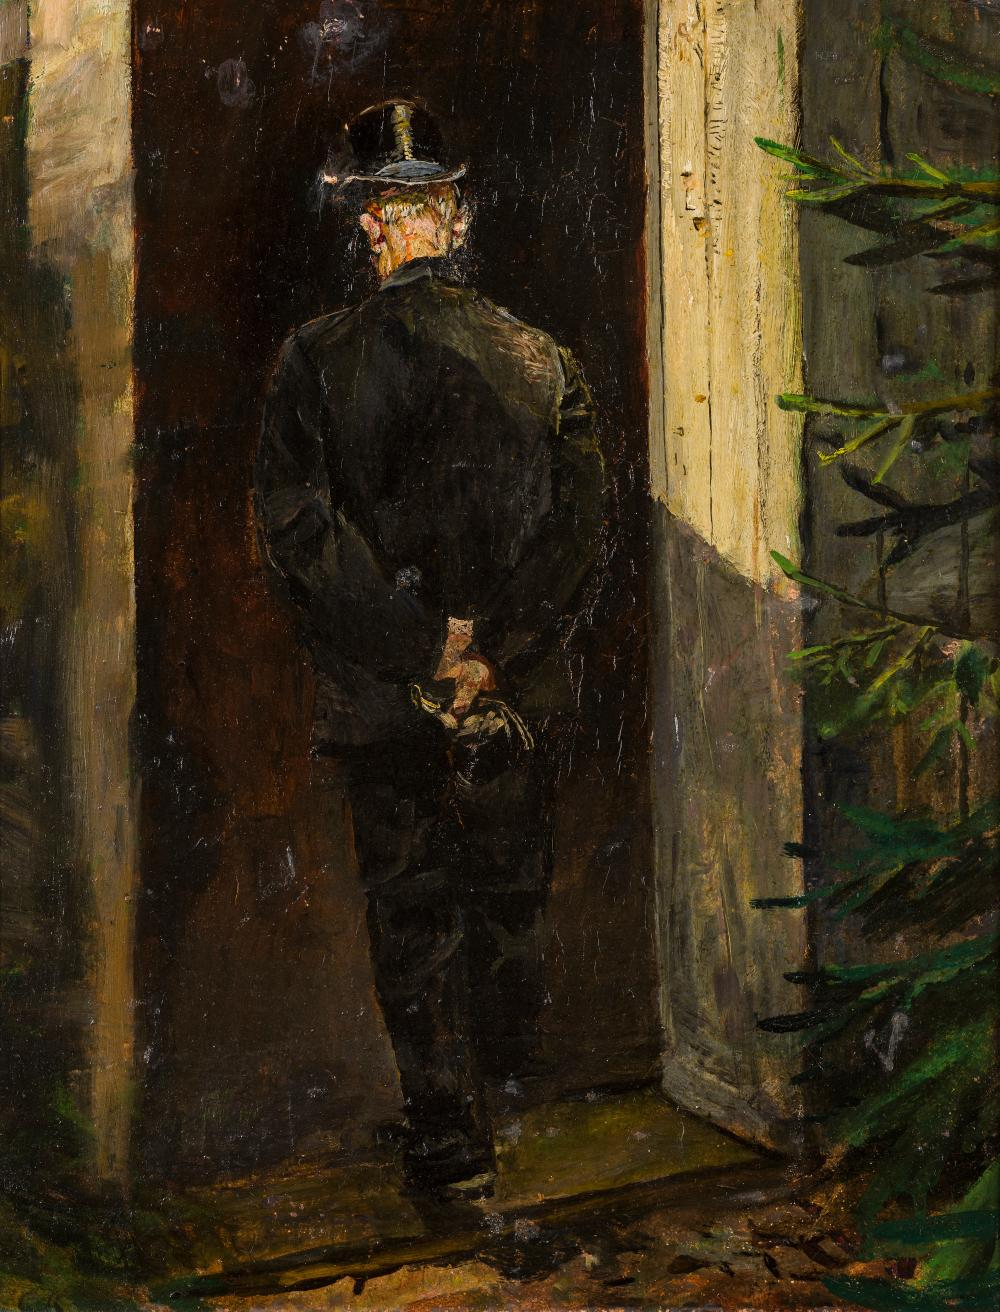 Christian Krohg (1852-1925), Man with a Top Hat in a Doorway, seen from behind